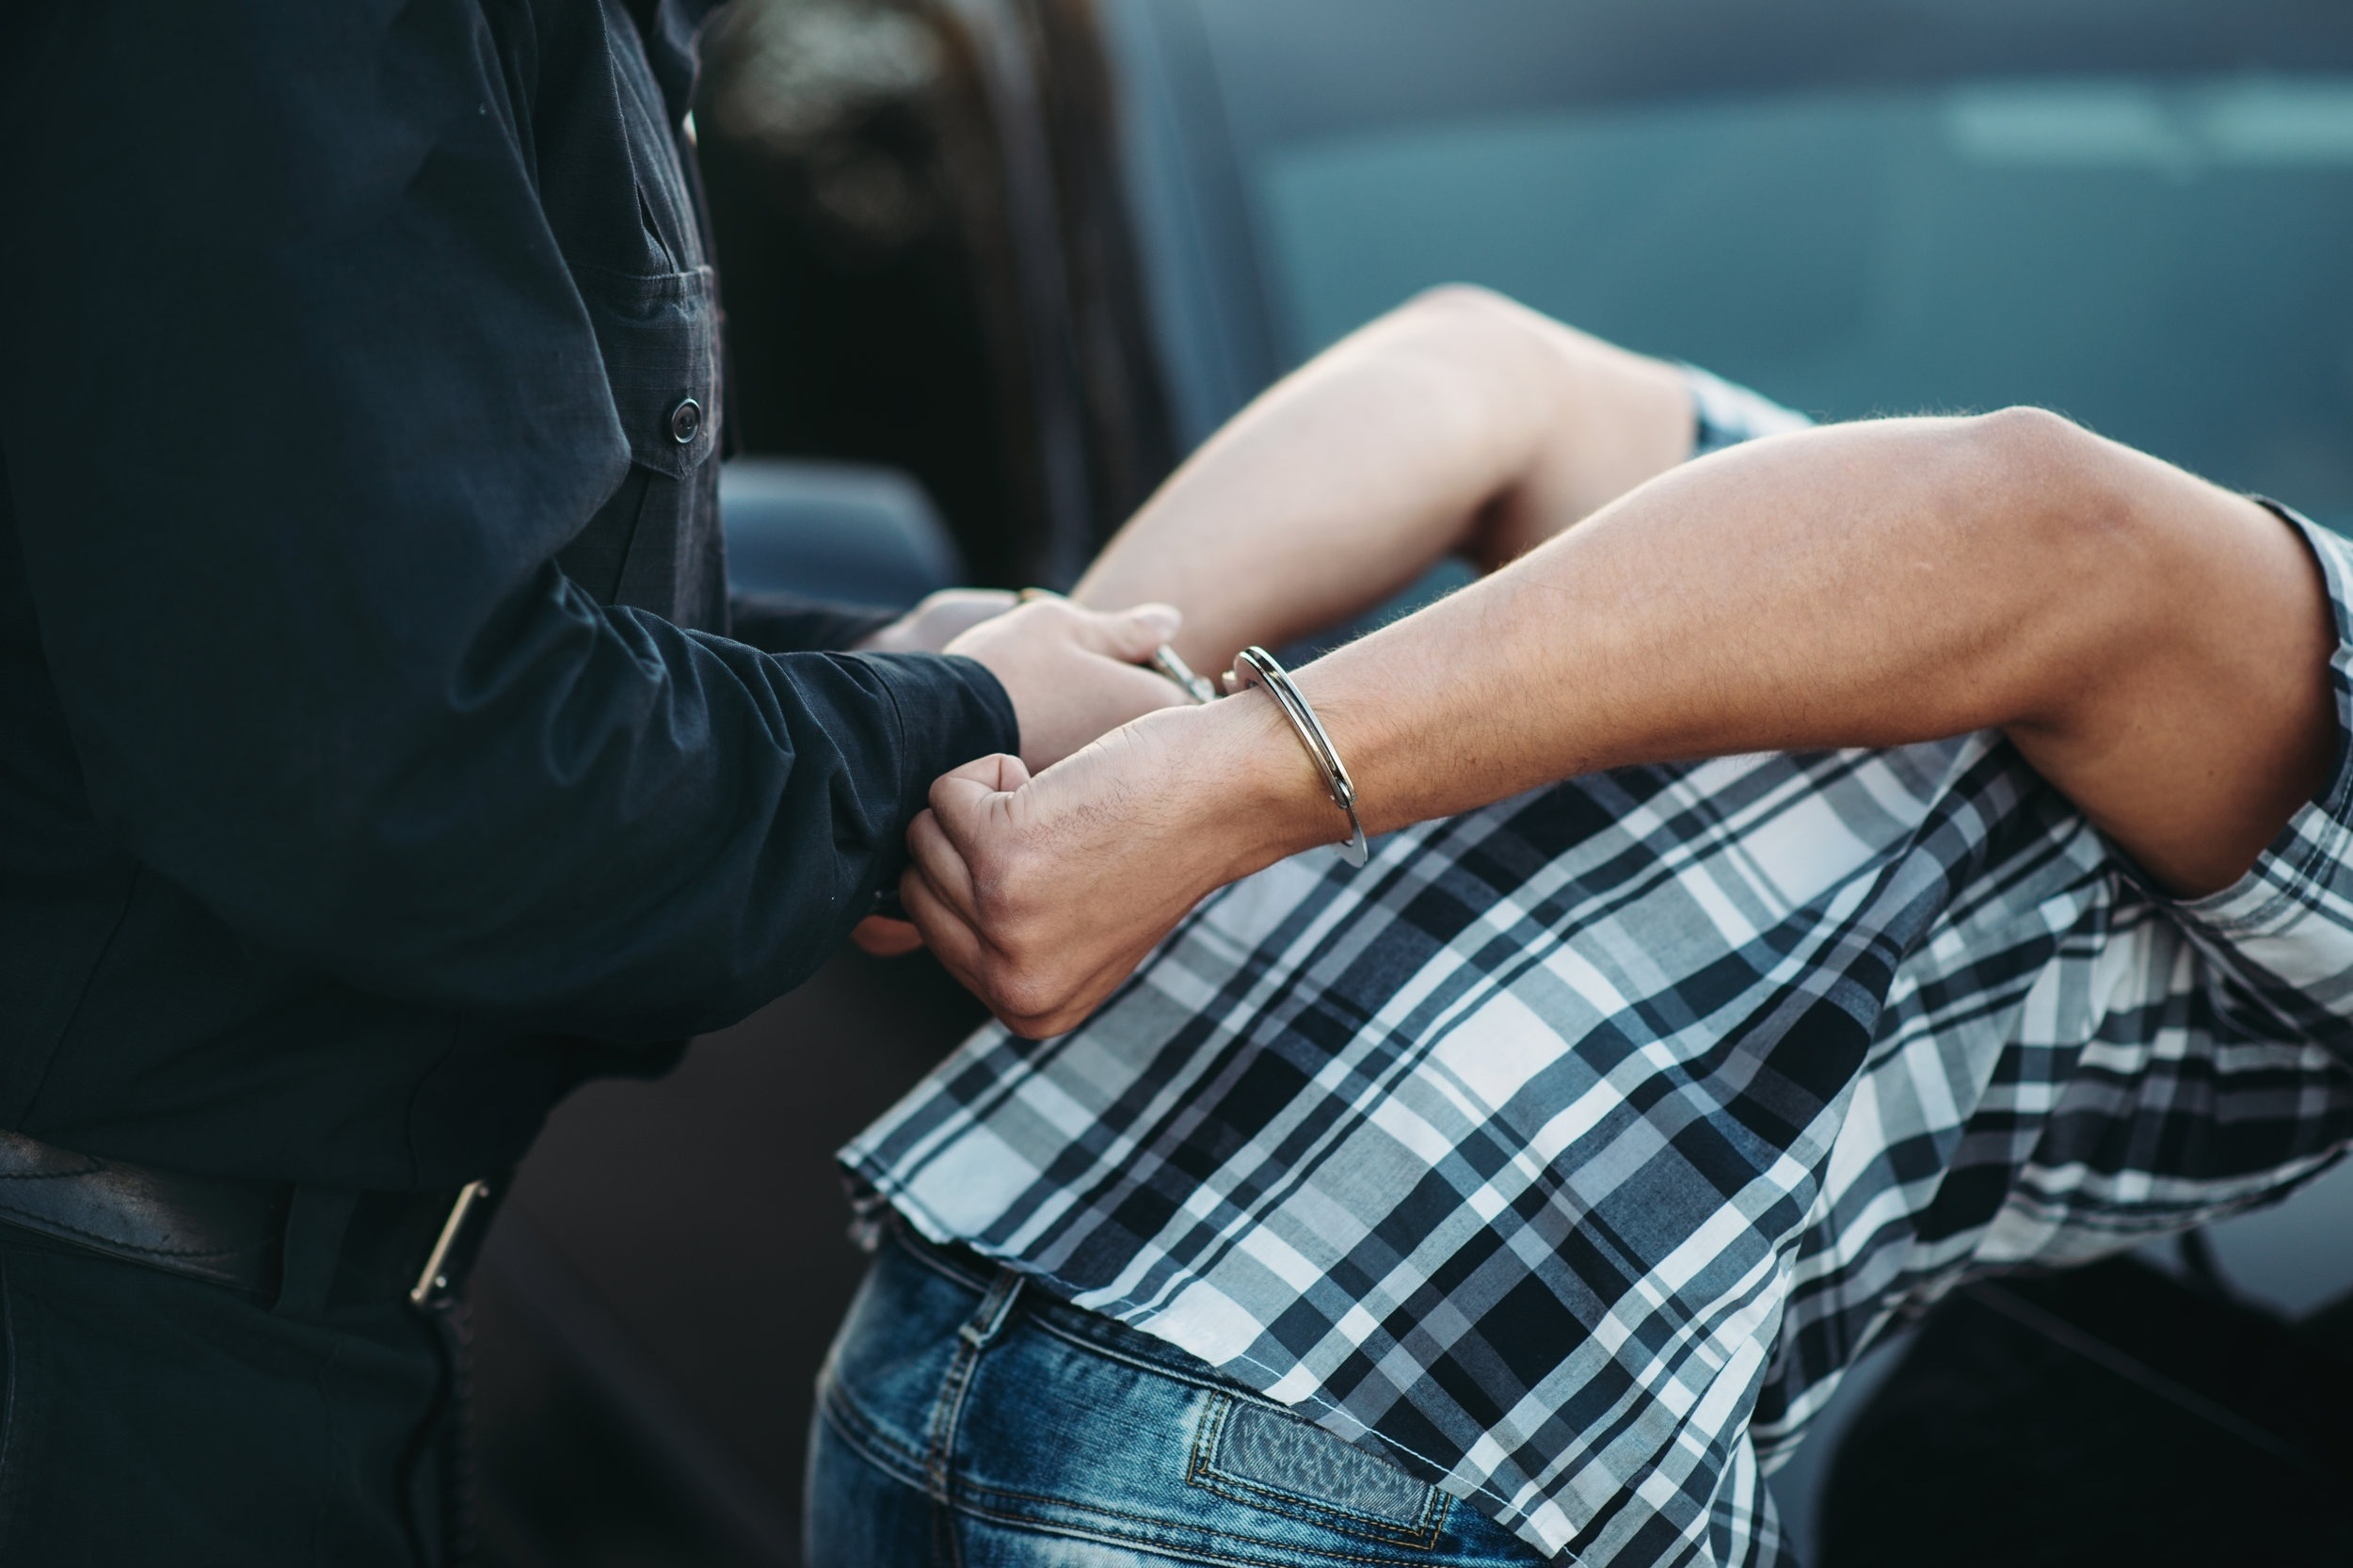 police-officer-puts-handcuffs-on-a-car-thief-5MPUJ9G.jpg